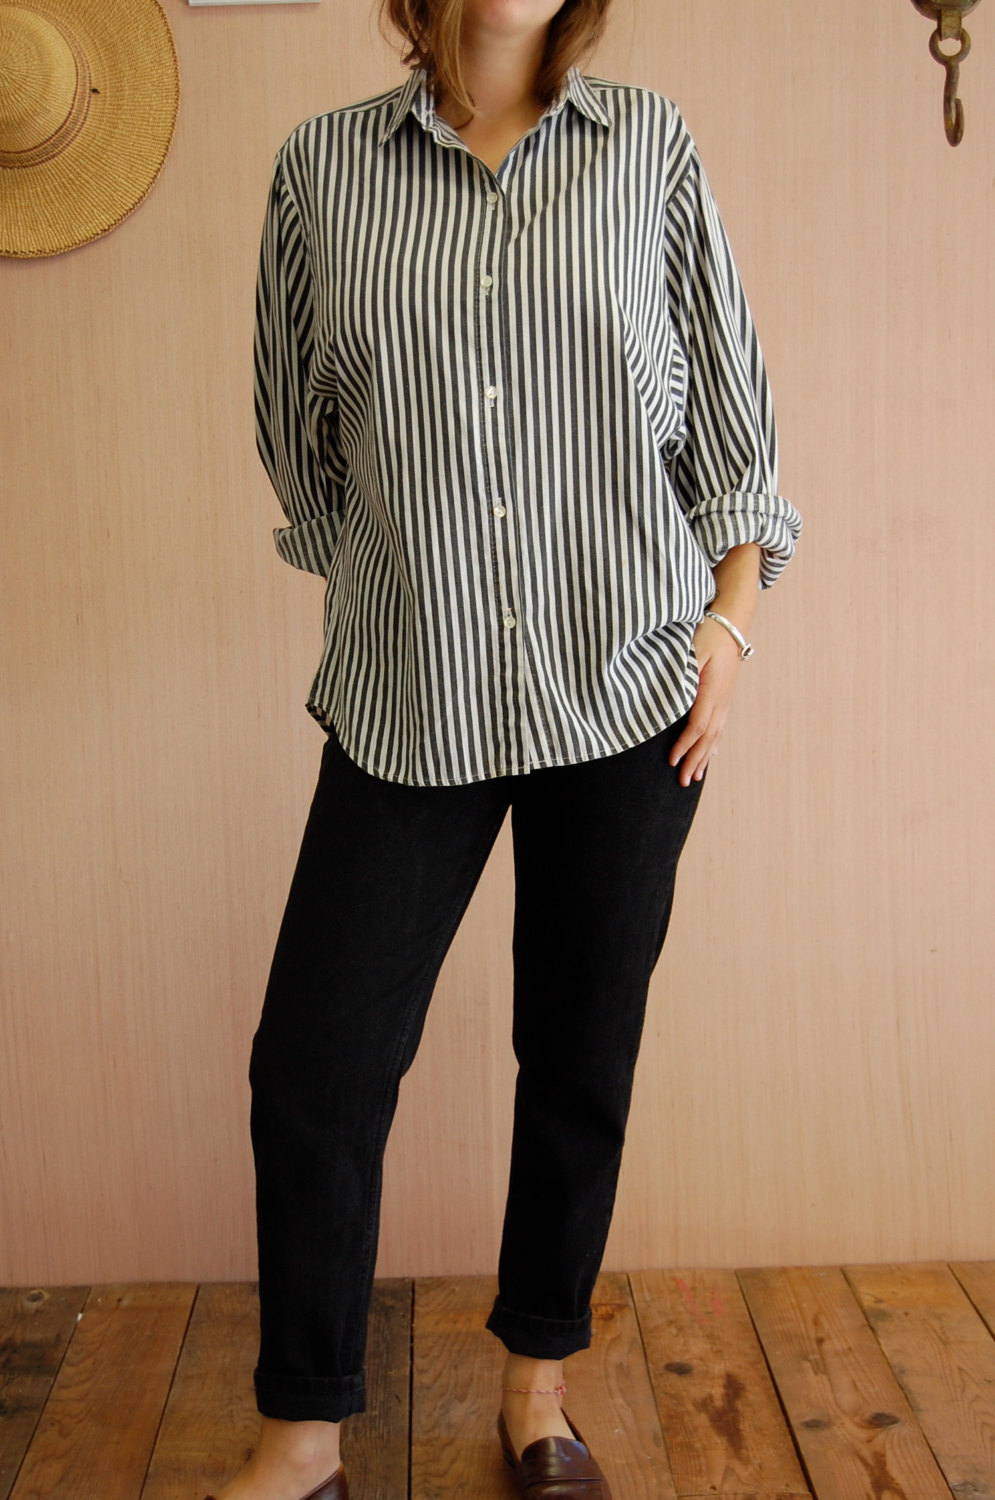 Vintage 80s Oversized Black & White Striped Button Up